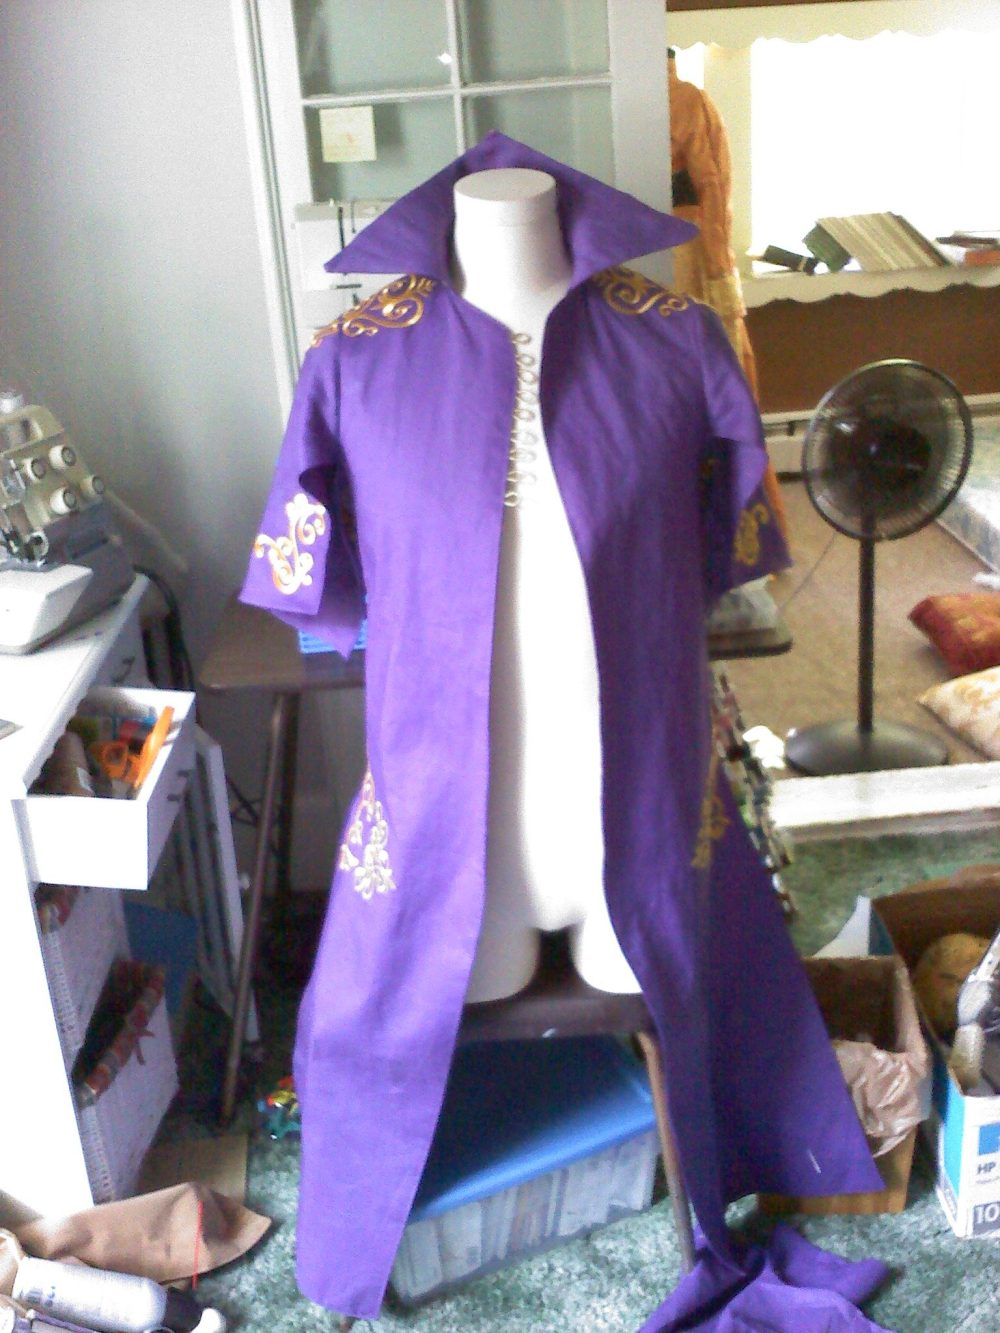 The purple coat is coming together.